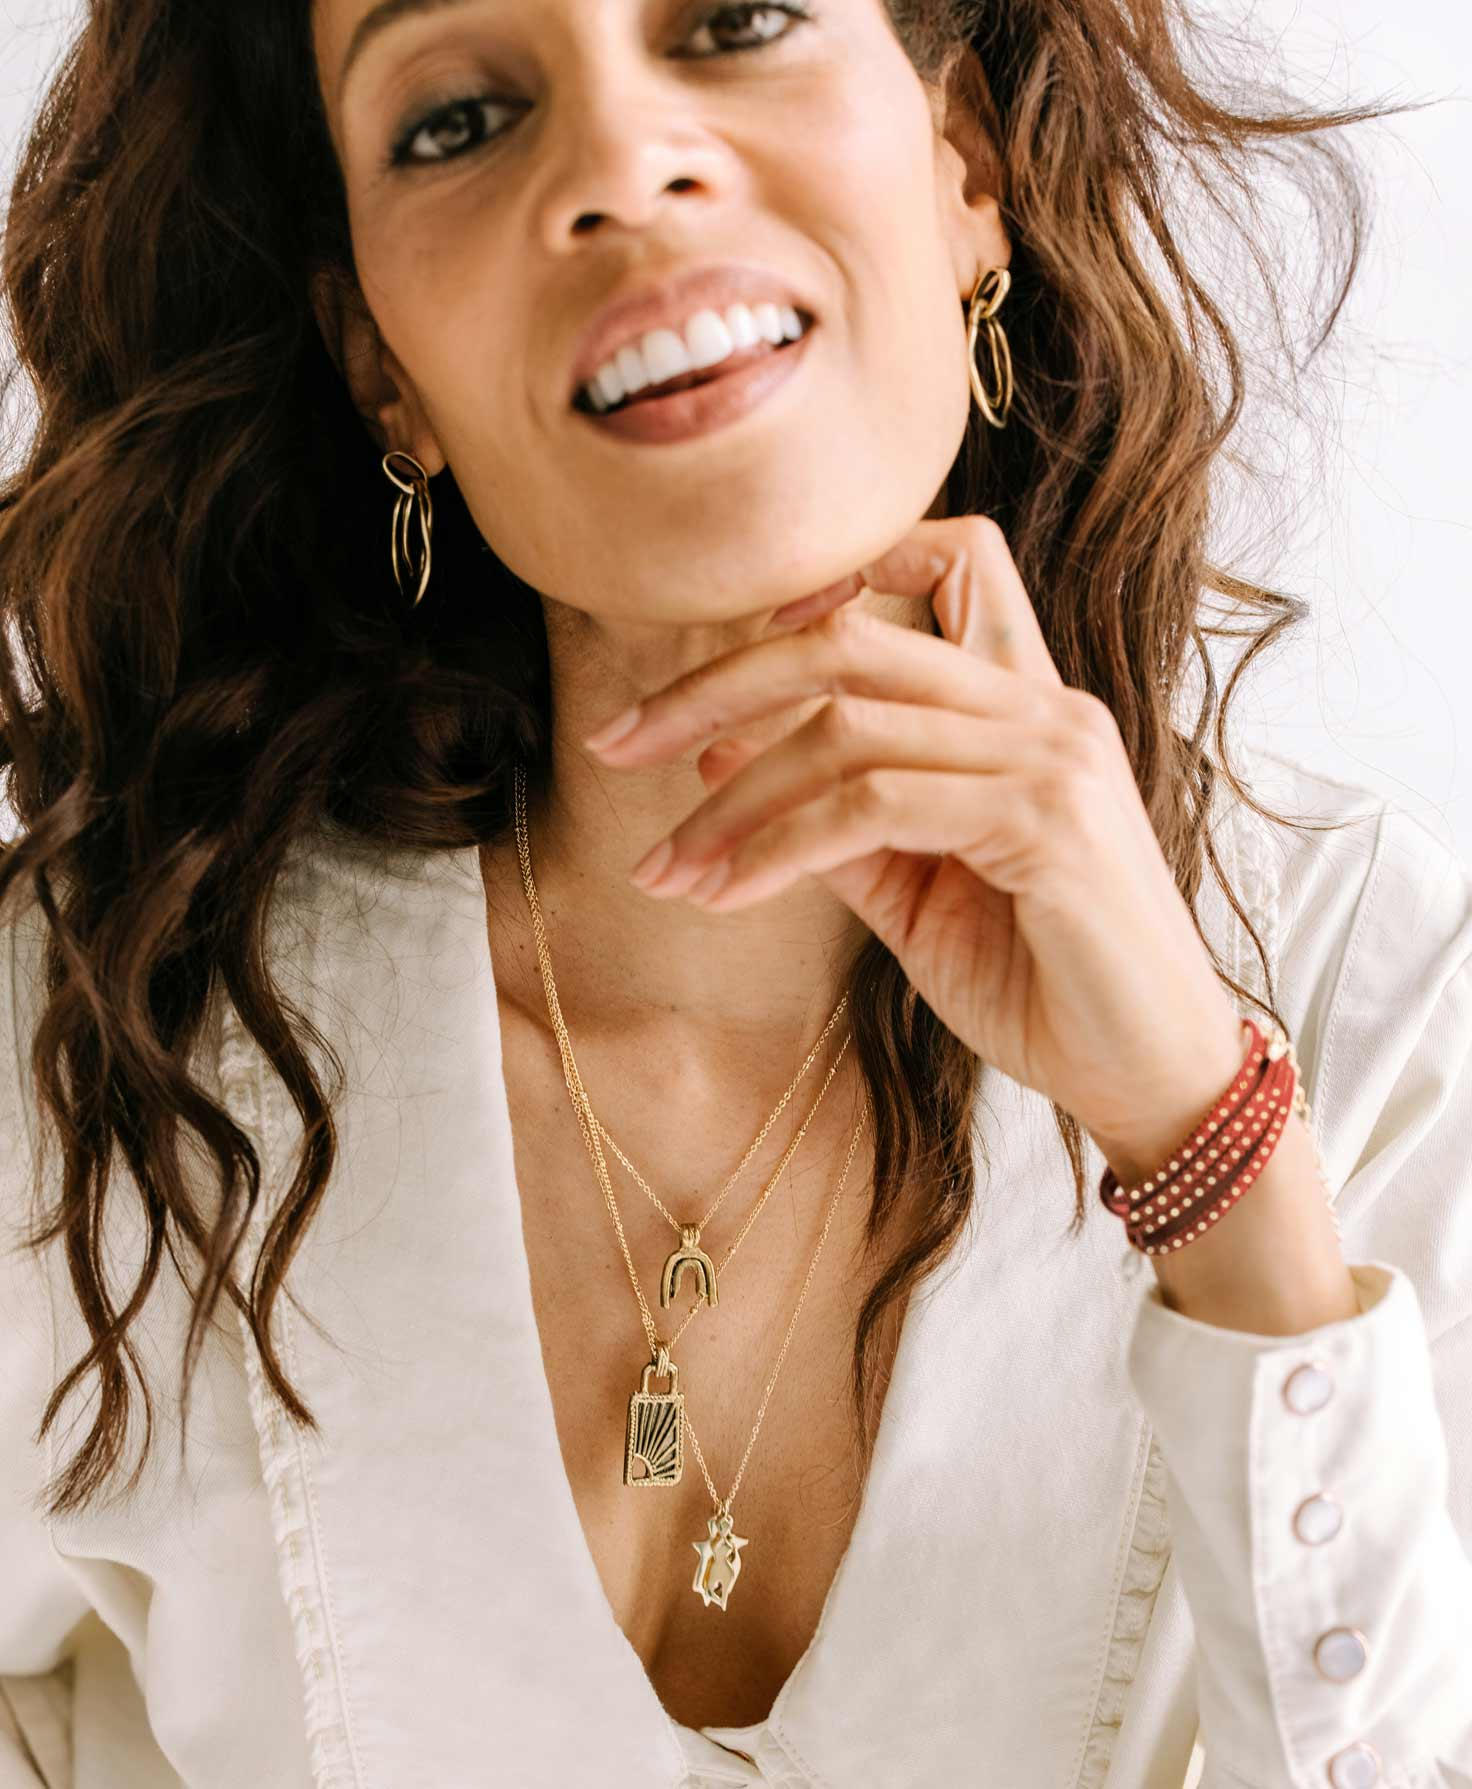 A model wears the Peacemaker Wrap Bracelet. She pairs it with the Wild Link Earrings and layered gold necklaces, including the Ember Necklace Set and the Kin Necklace.